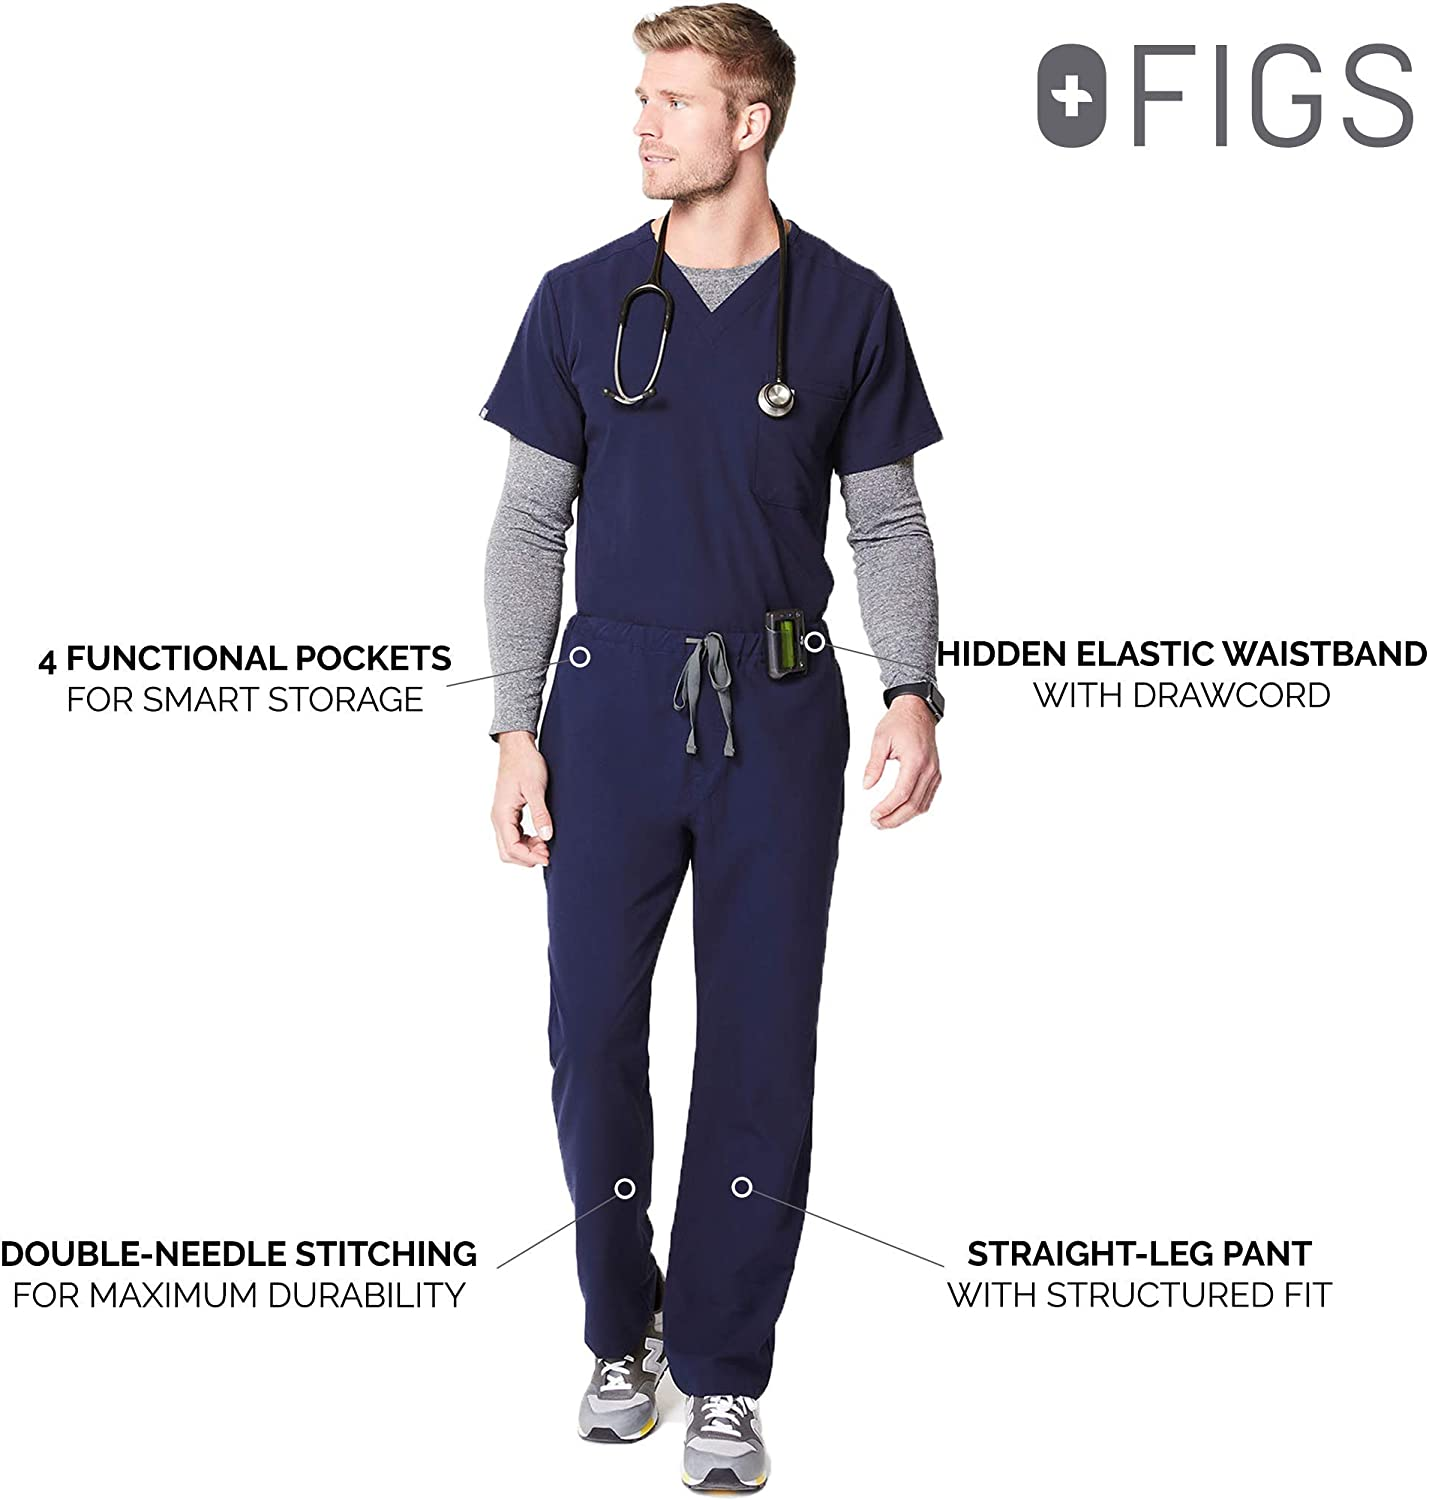 FIGS Pisco Basic Scrub Pants for Men – Tailored Fit, Super Soft Stretch, Anti-Wrinkle Medical Scrub Pants: Clothing